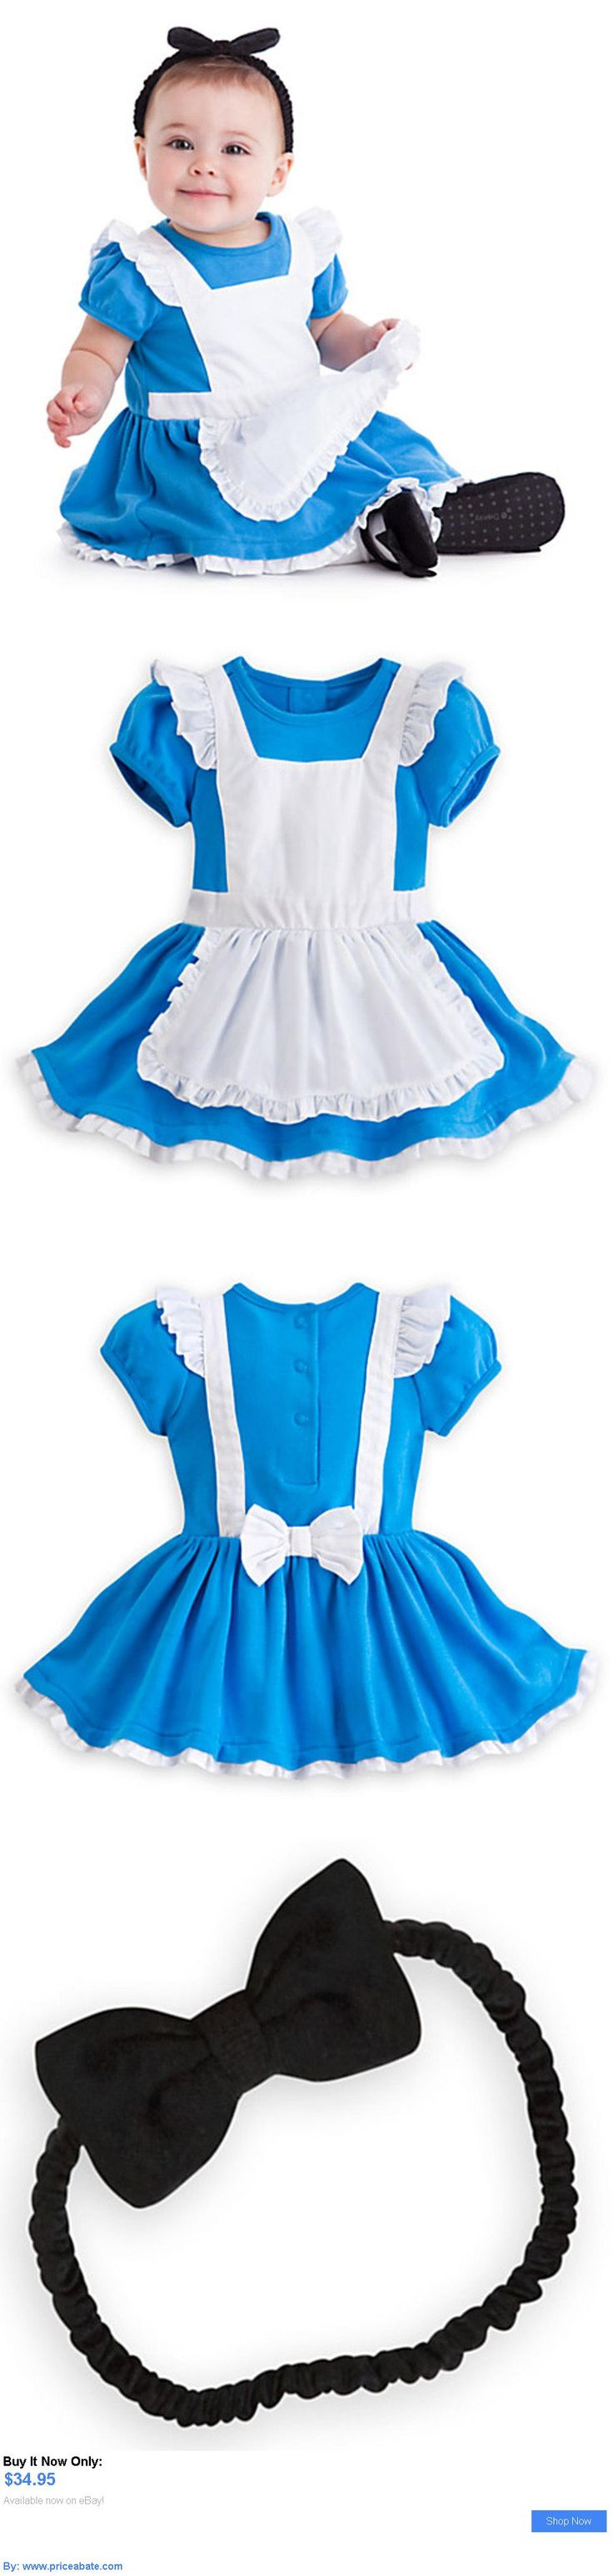 Dresses skirts clothes women disney store - Kids Costumes Disney Store Alice In Wonderland Halloween Costume Dress Toddler Baby All Sizes